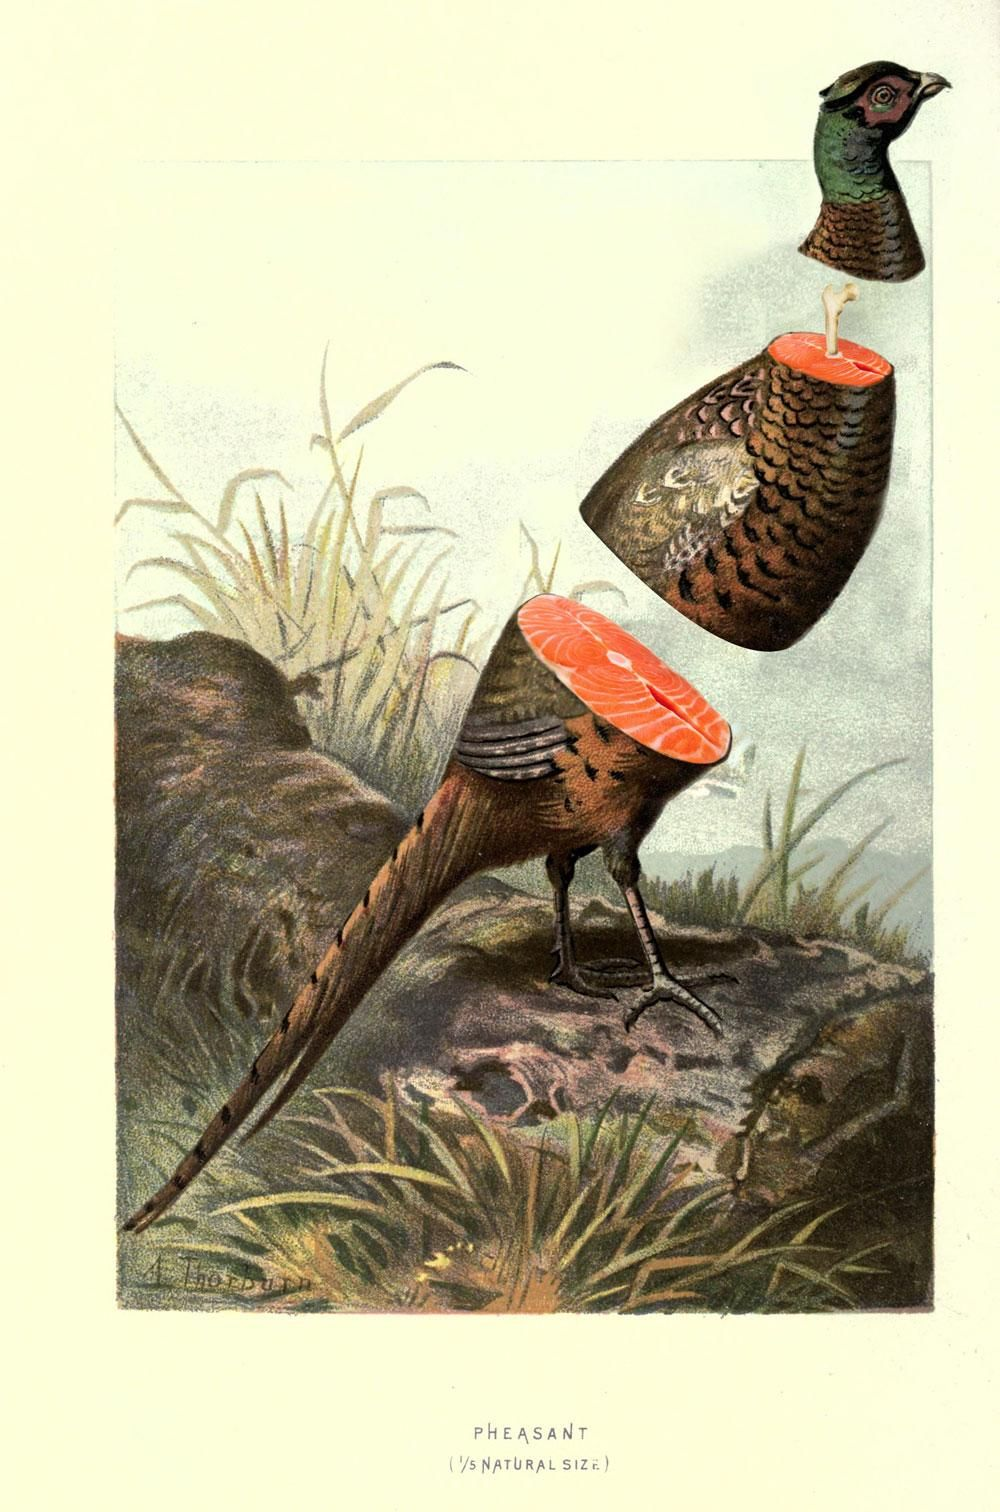 Pheasant - image 1 - student project